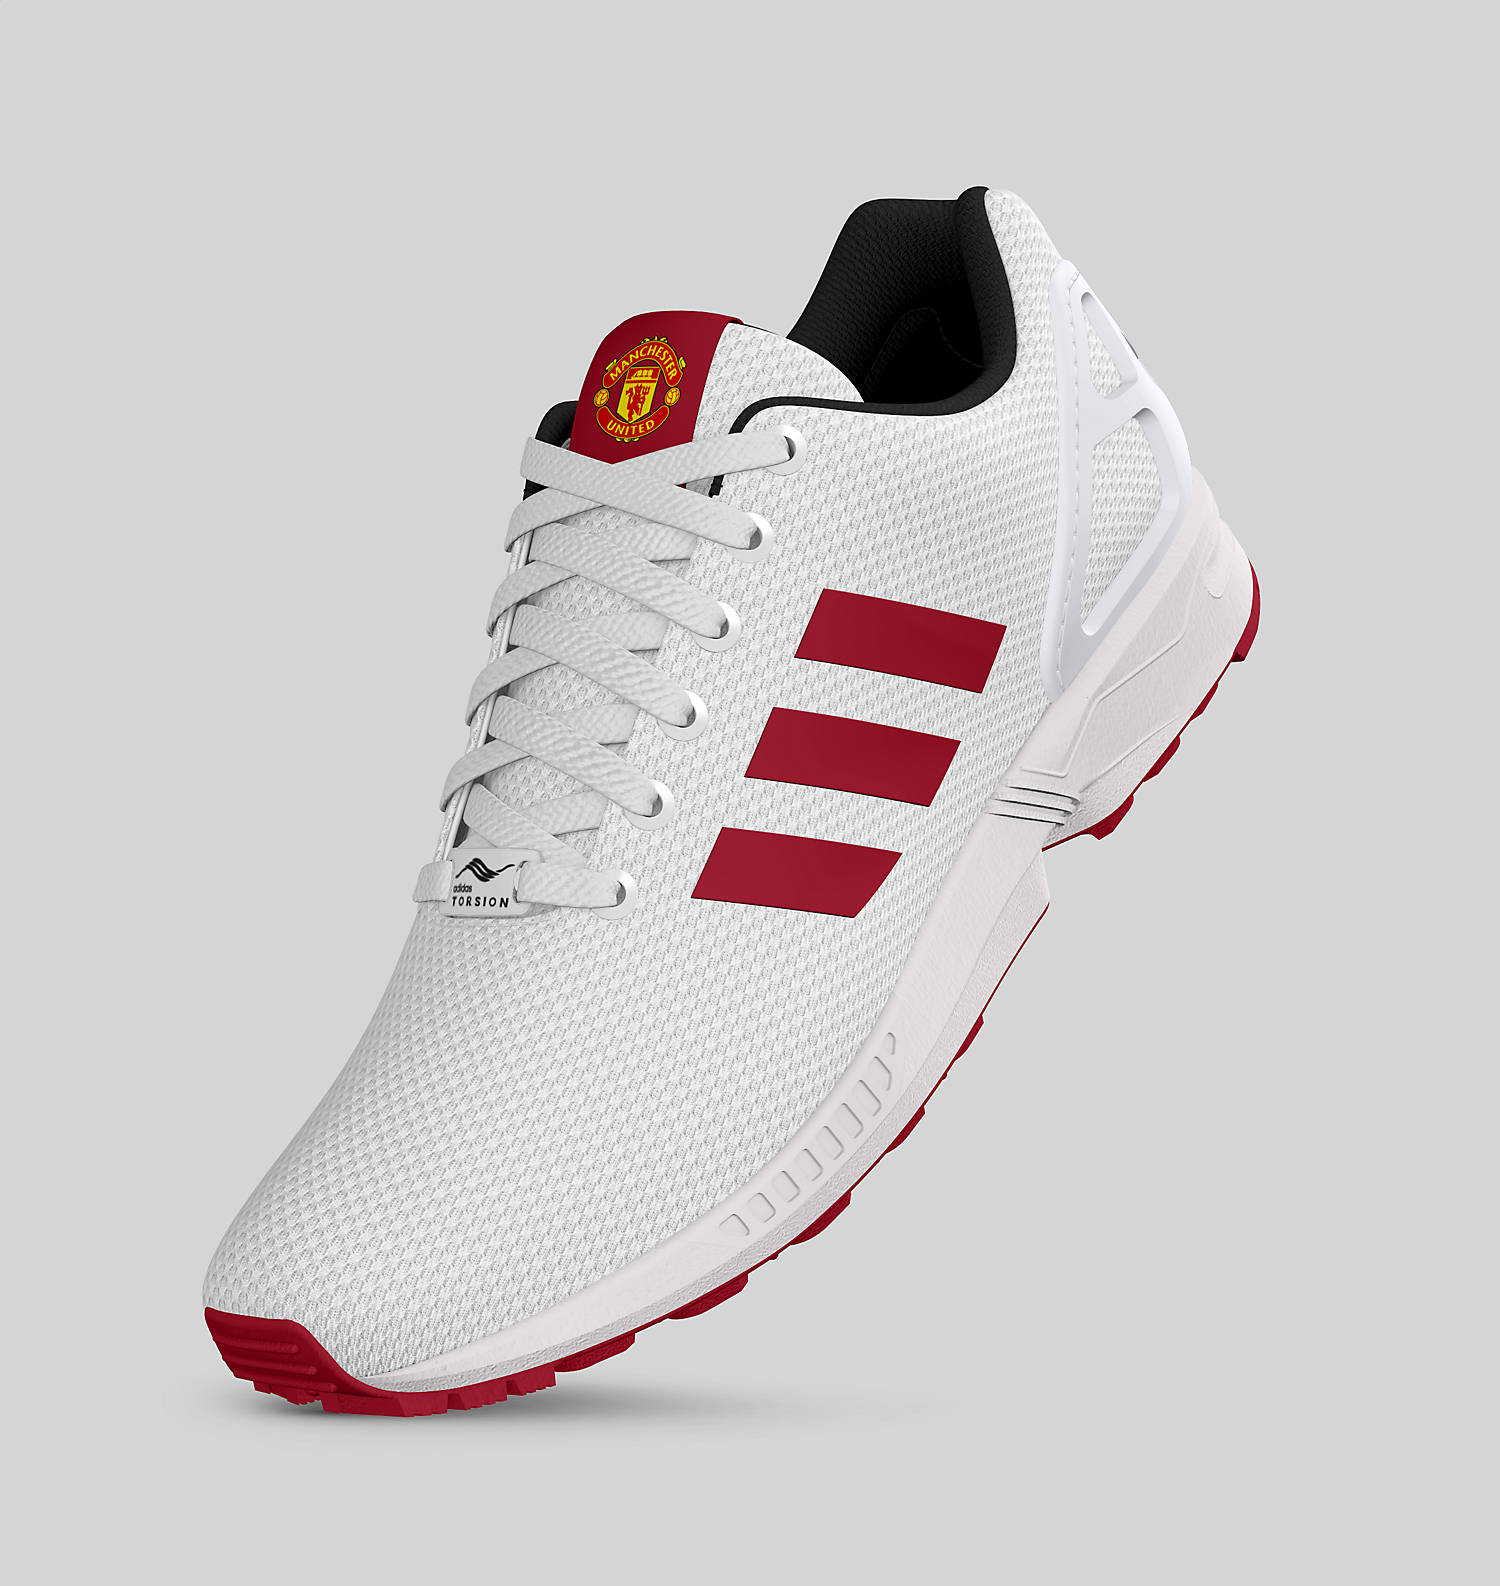 Adidas Manchester United ZX Flux Sneakers